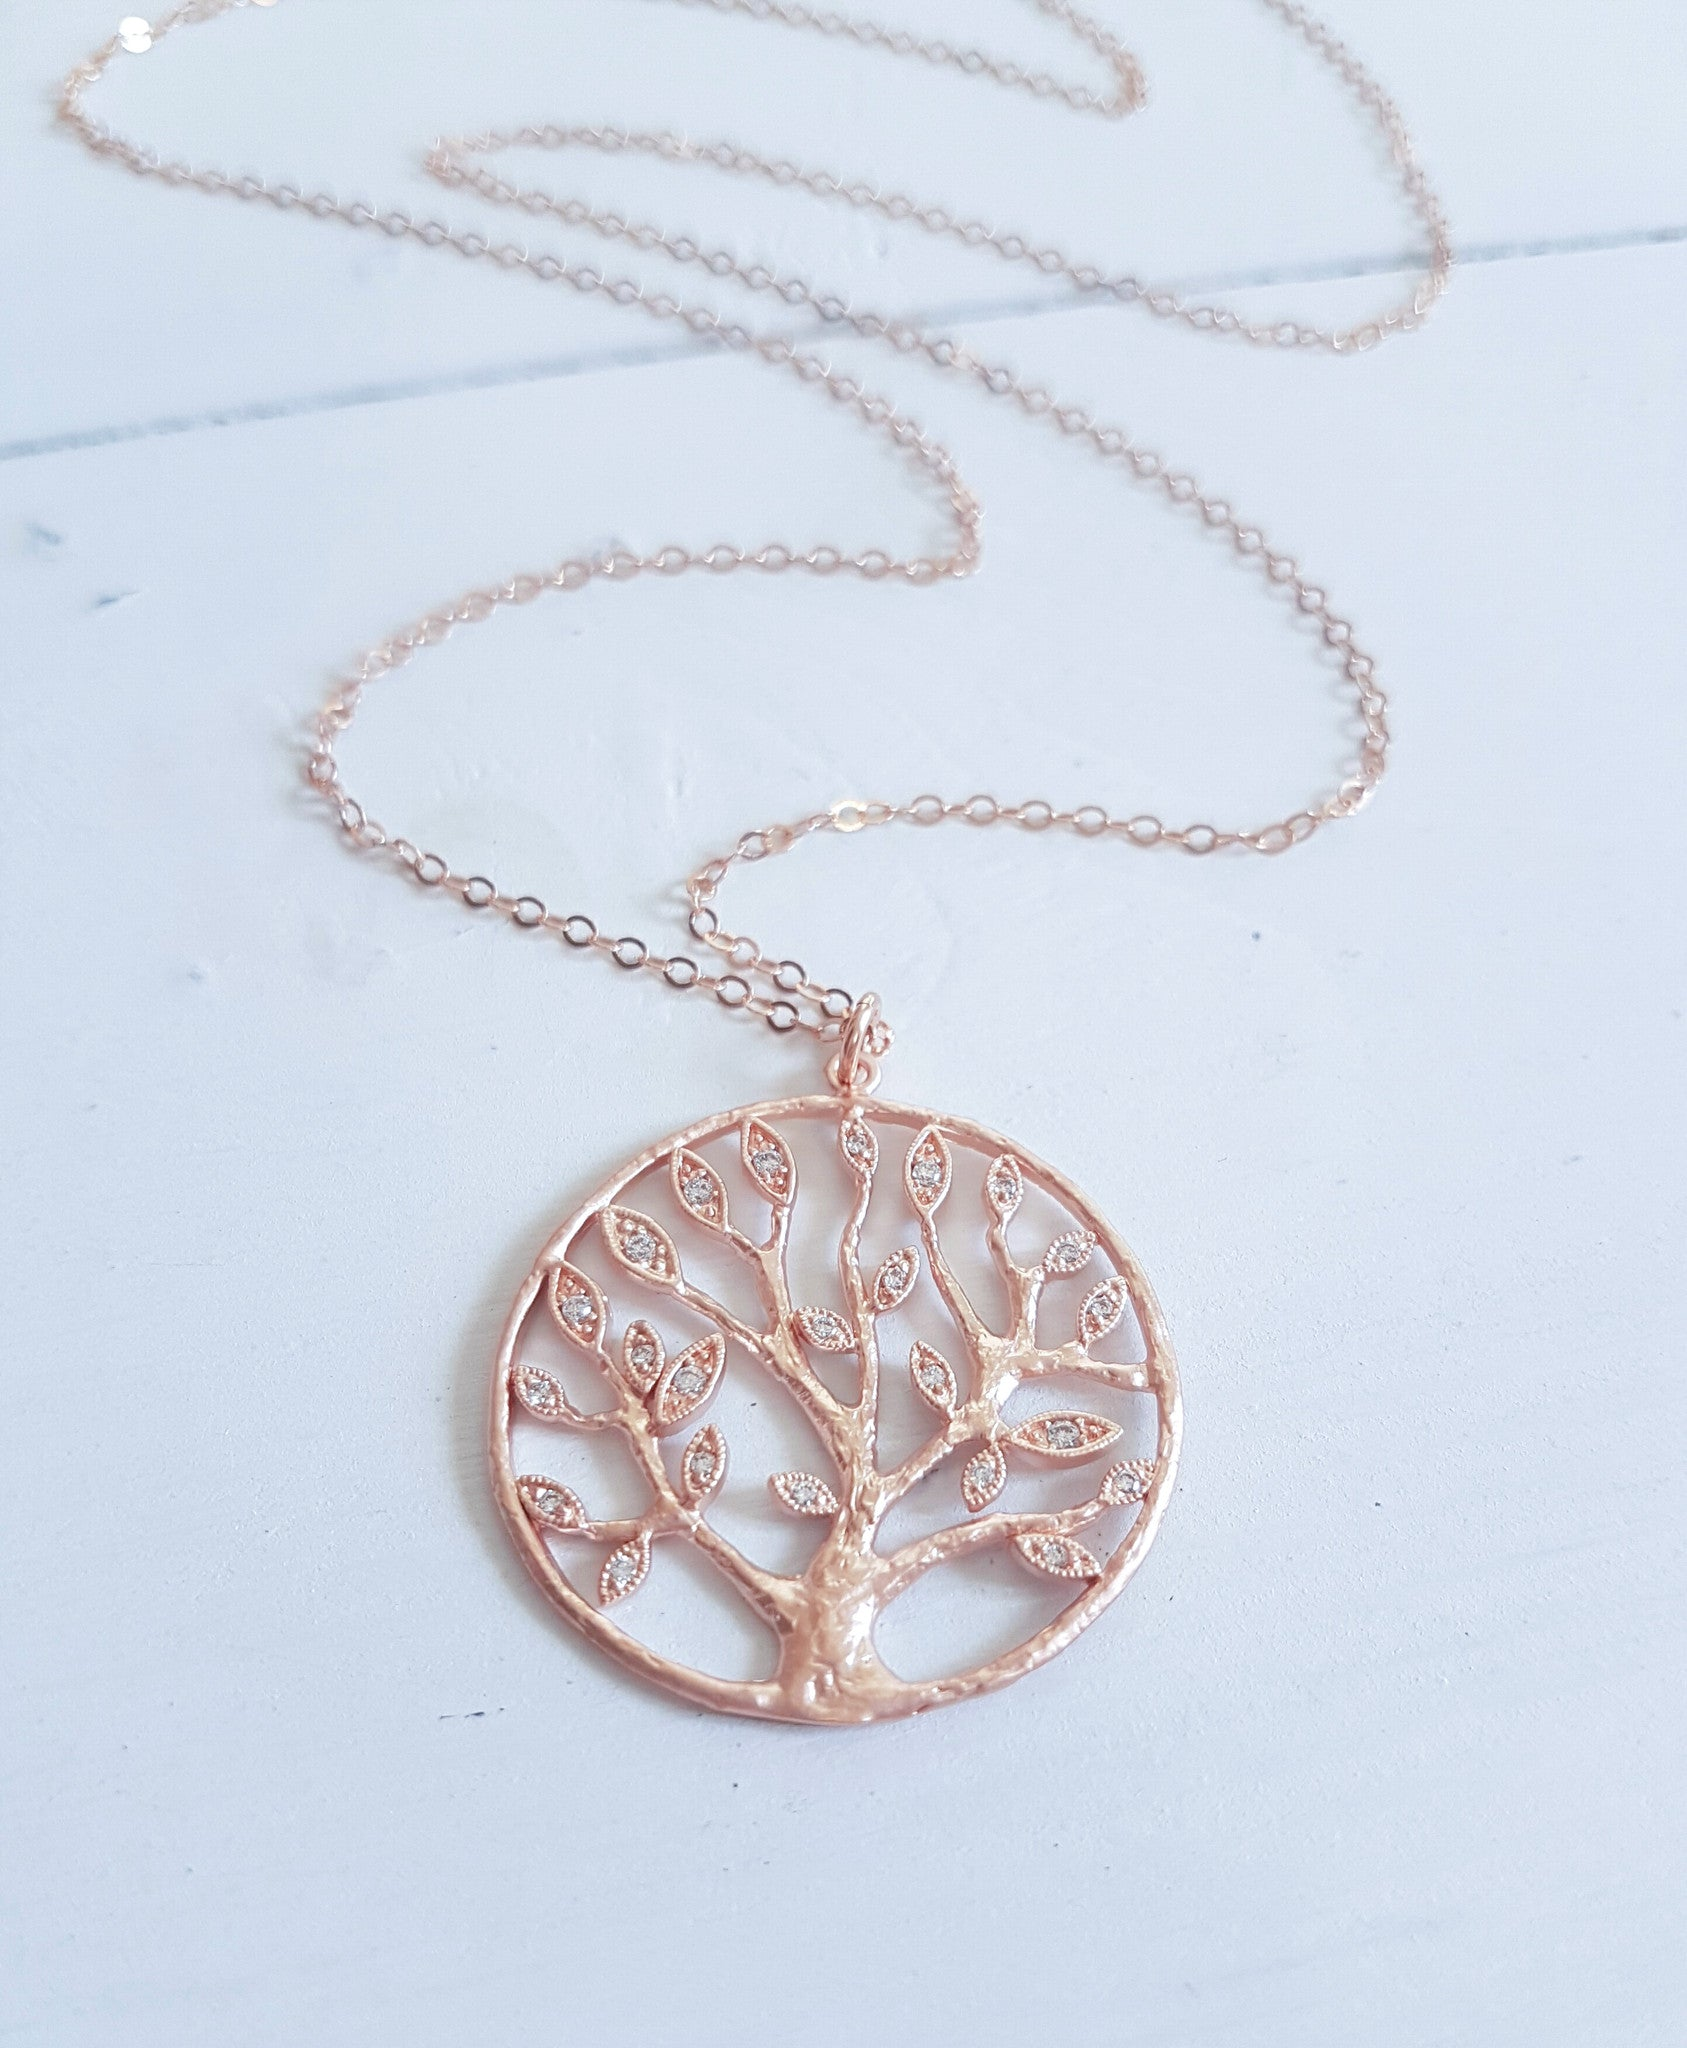 original for personalized gift il of mother tree life collections family products mommy jewelry grandma fullxfull pendant necklace eeyp t